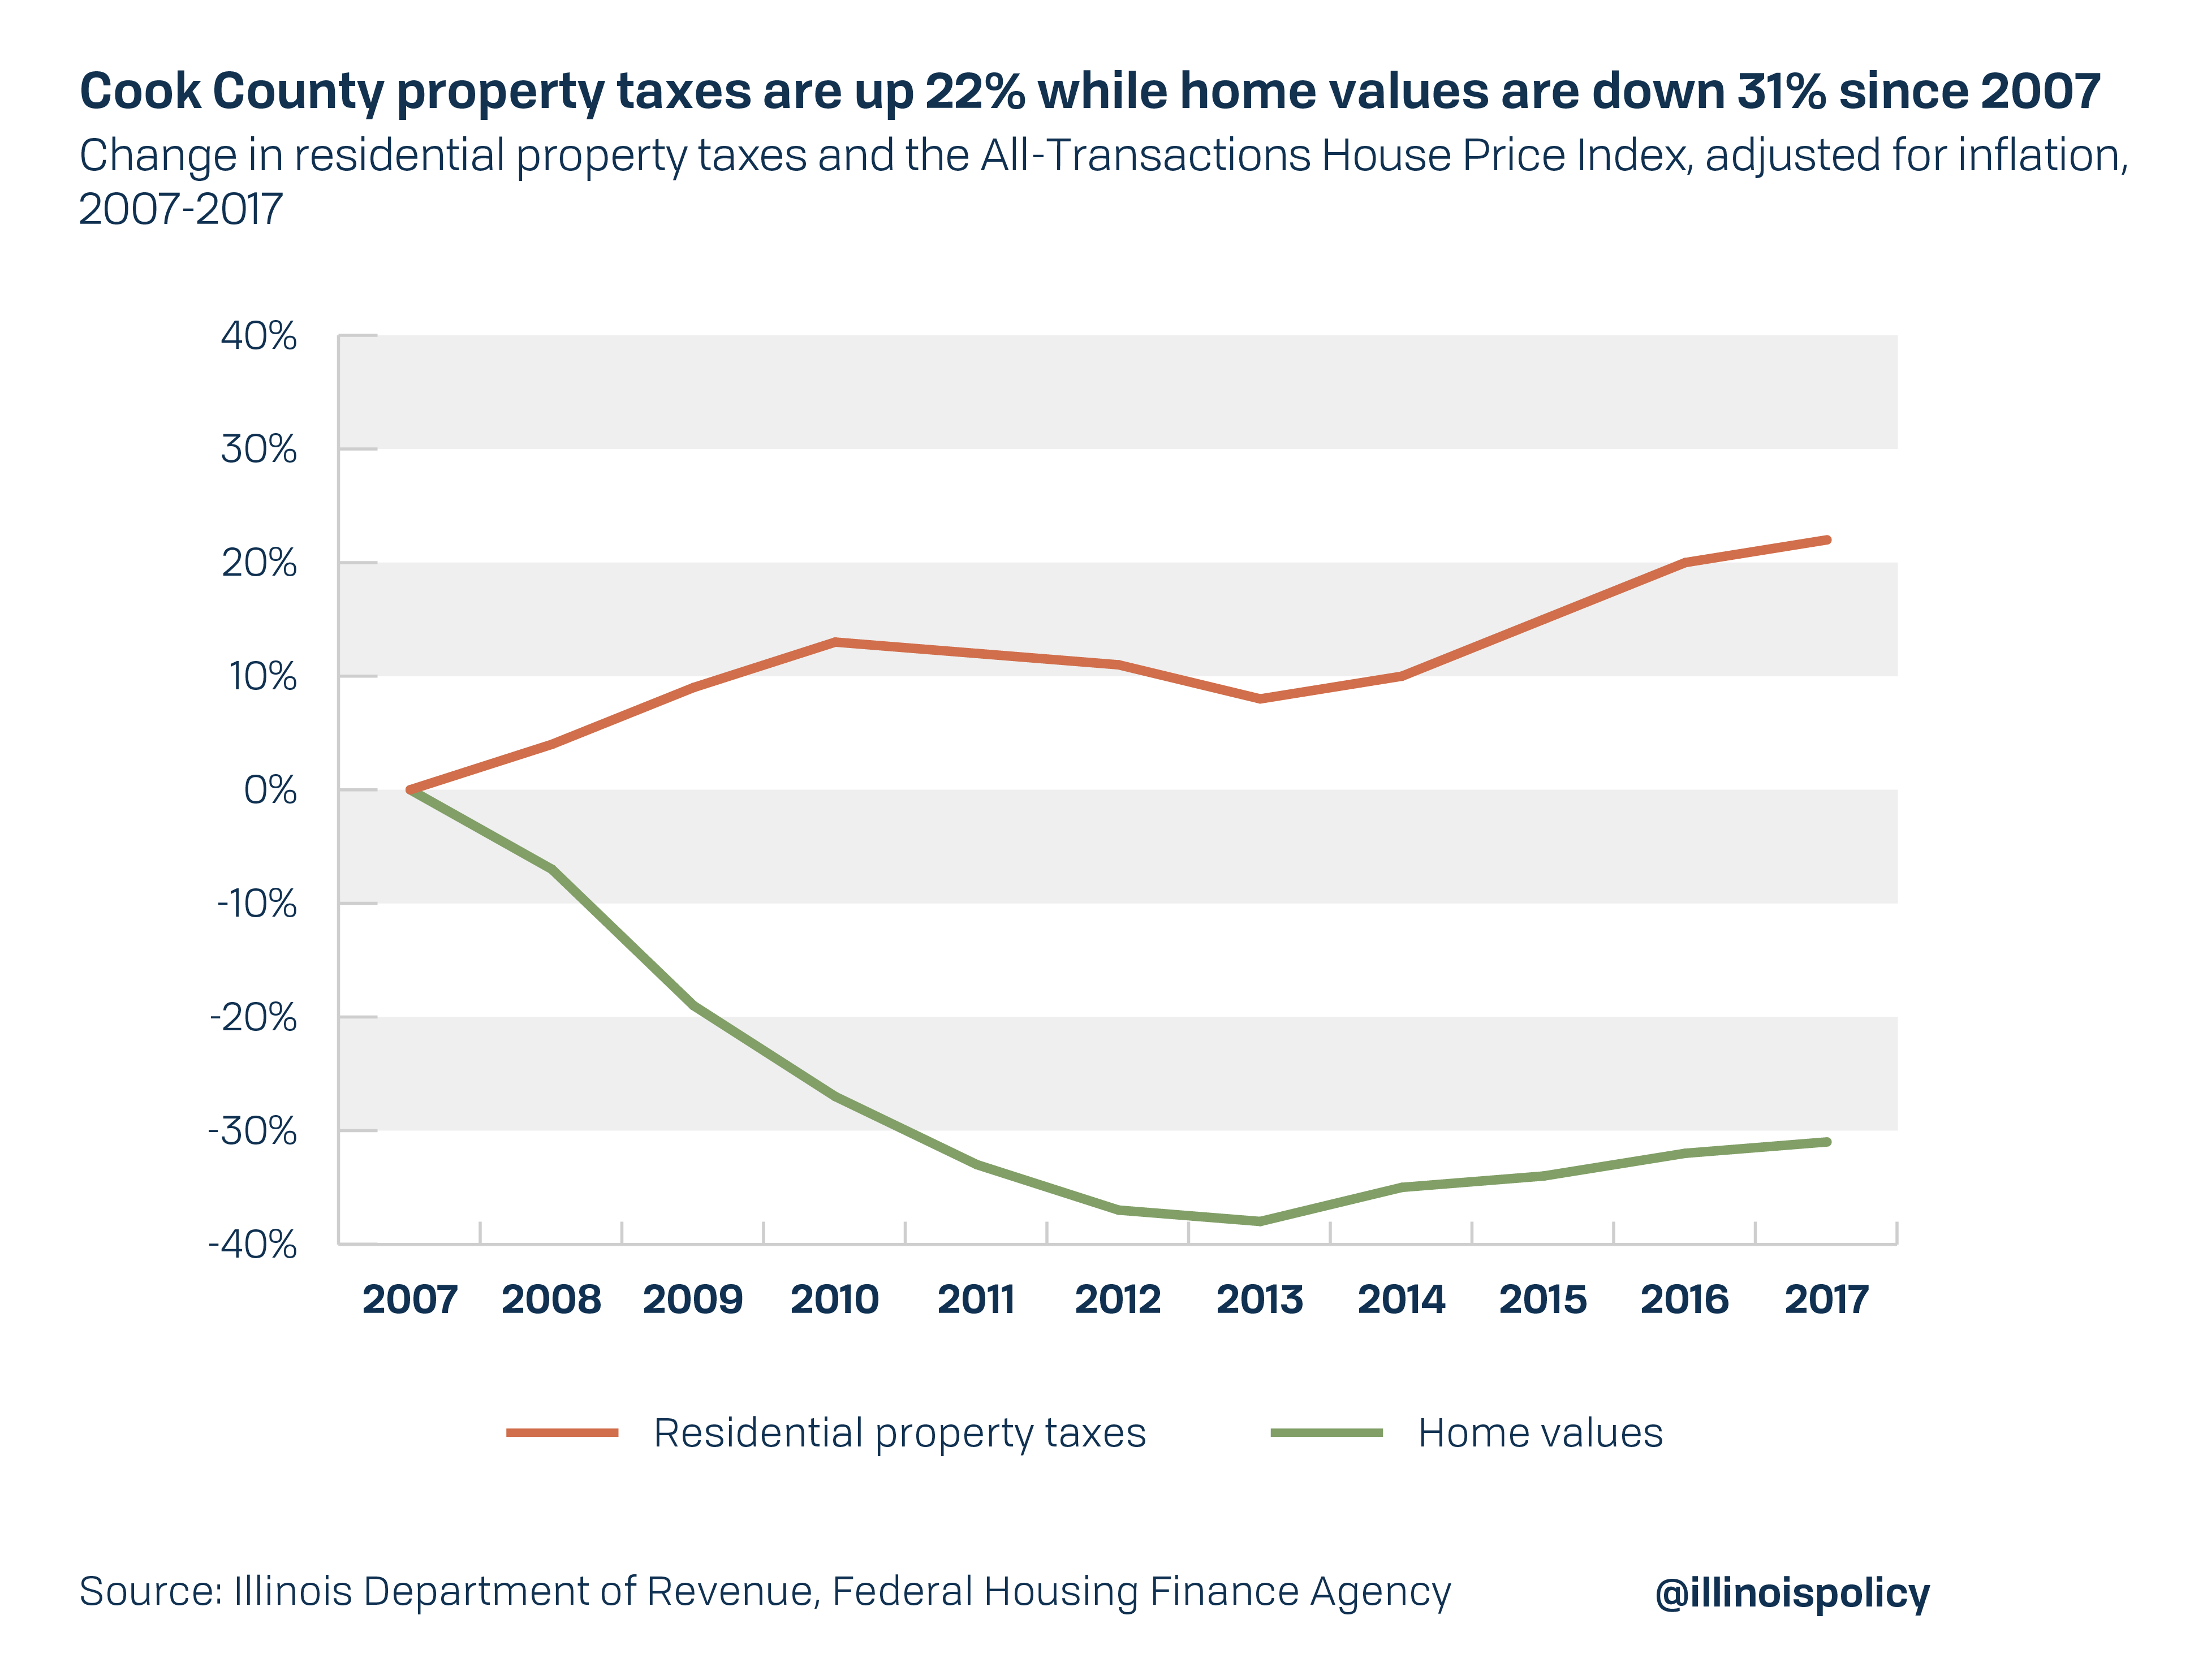 Cook County home values down 31%, property taxes up 22% since 2007